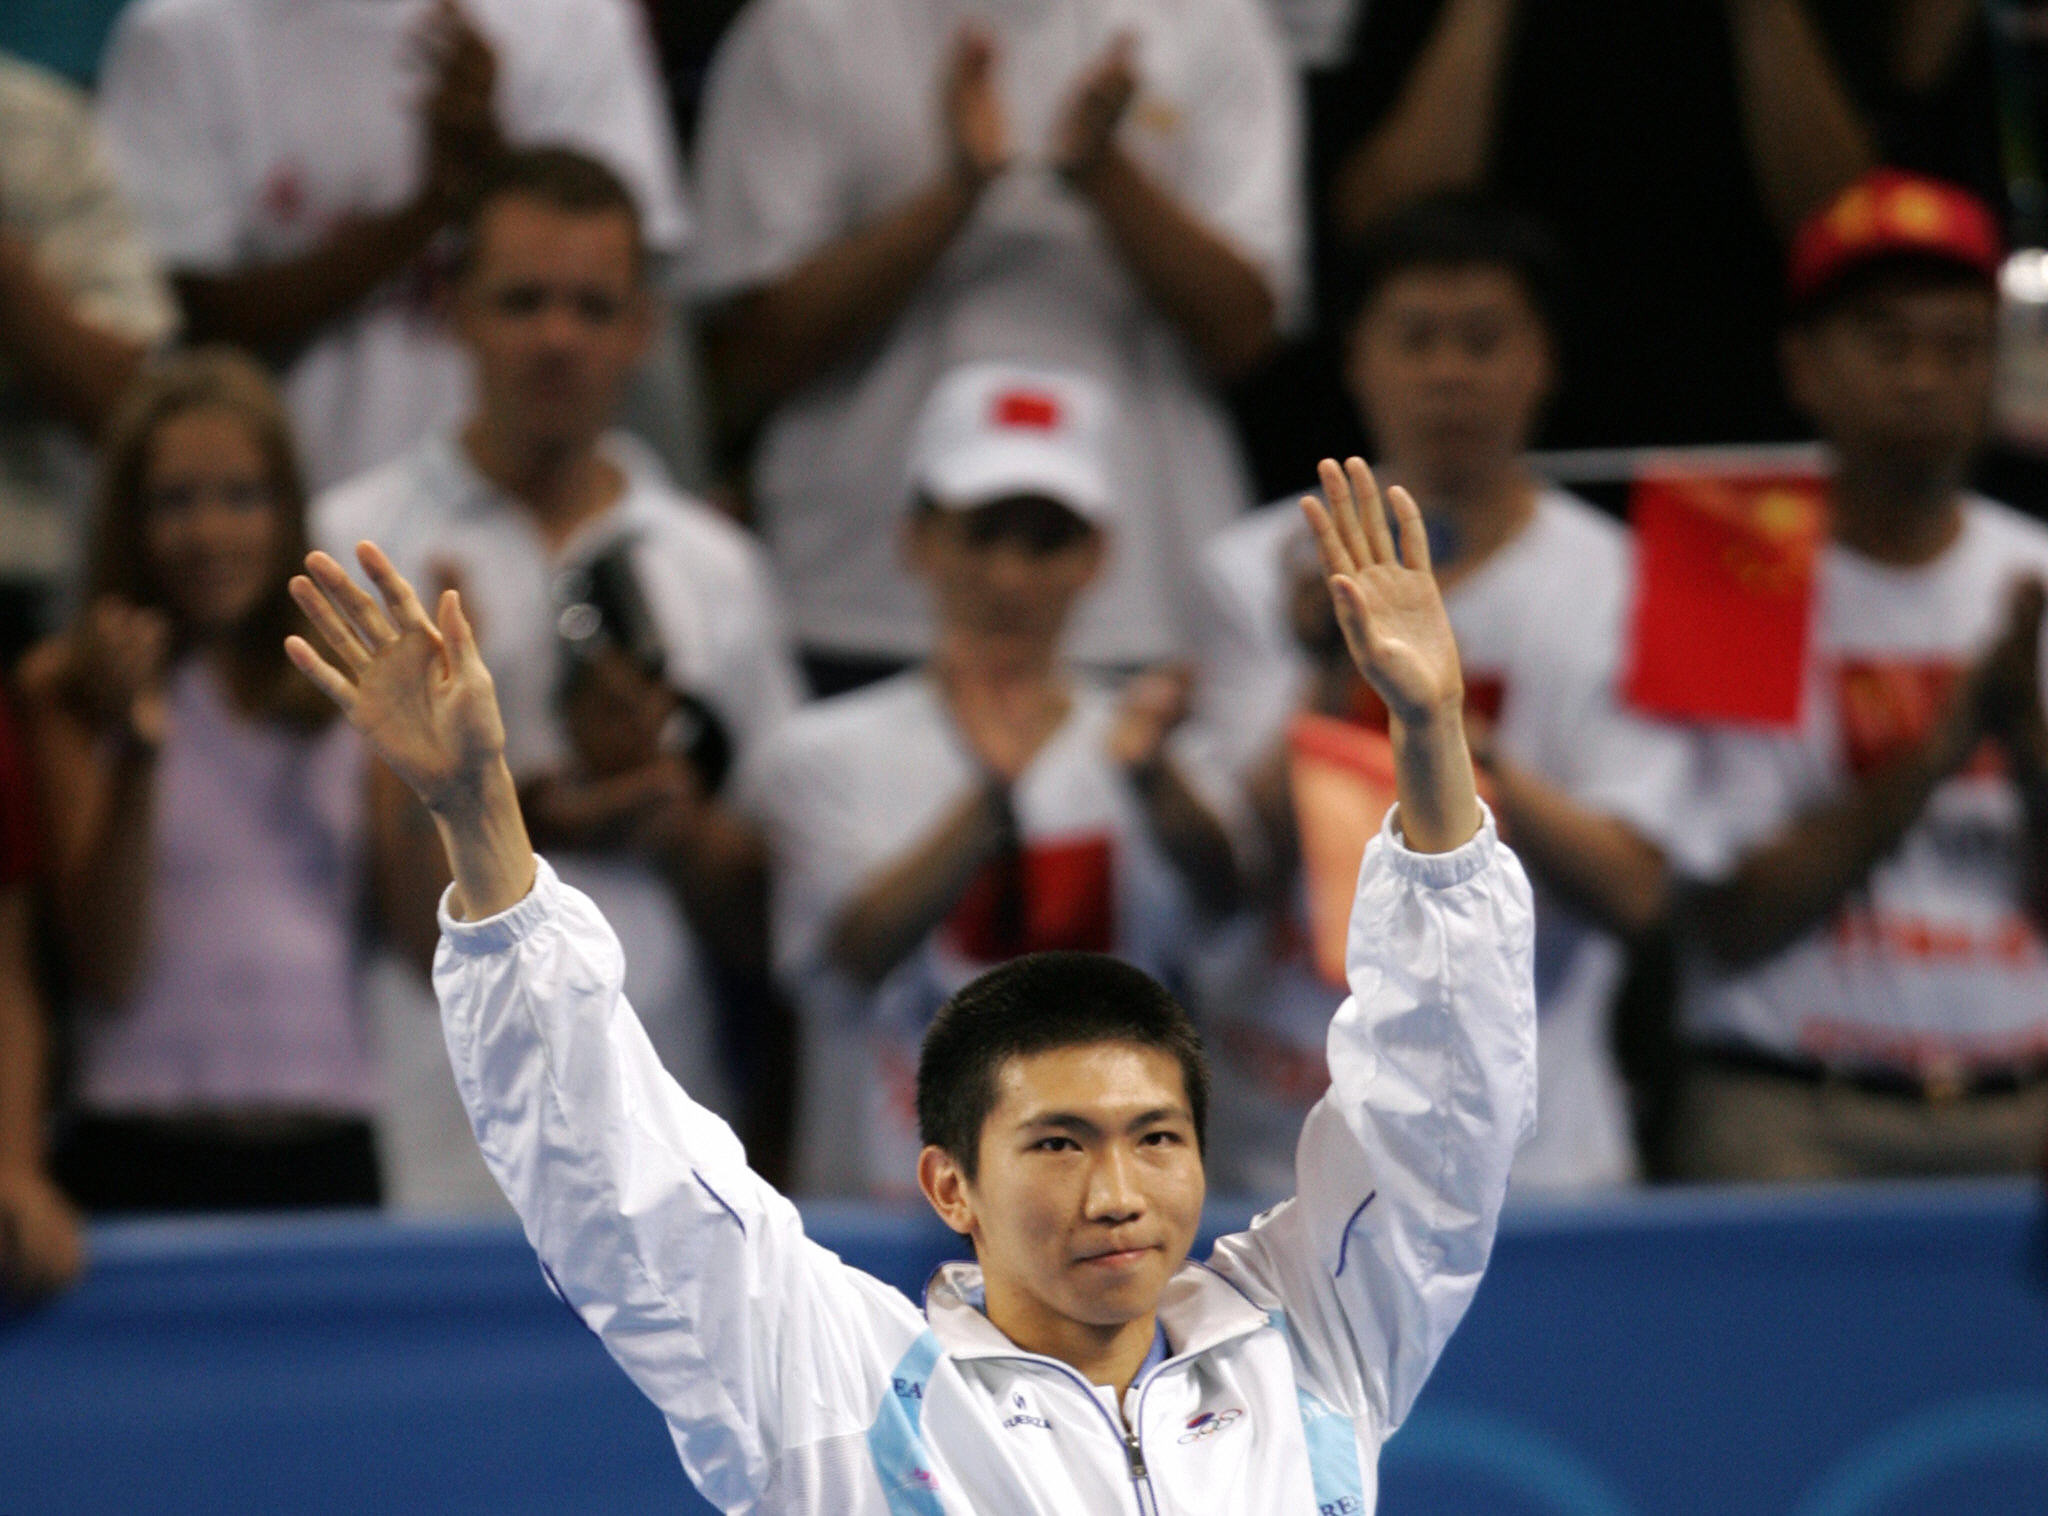 Ryu Seung-min was the men's singles table tennis gold medallist at the 2004 Olympic Games in Athens ©Getty Images